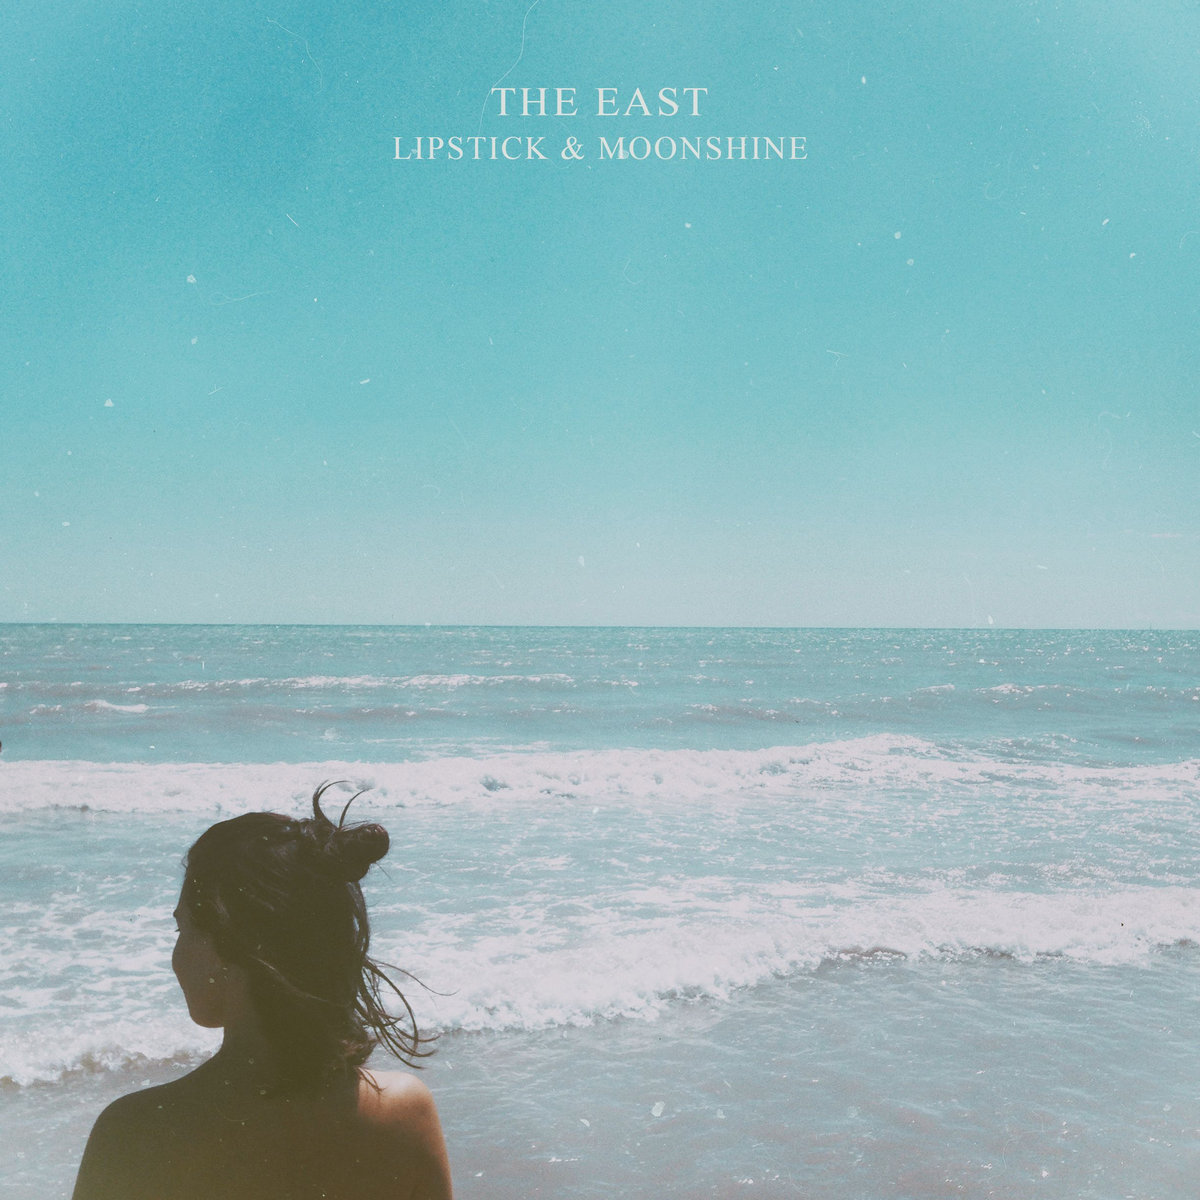 The EAST - Lipstick & Moonshine